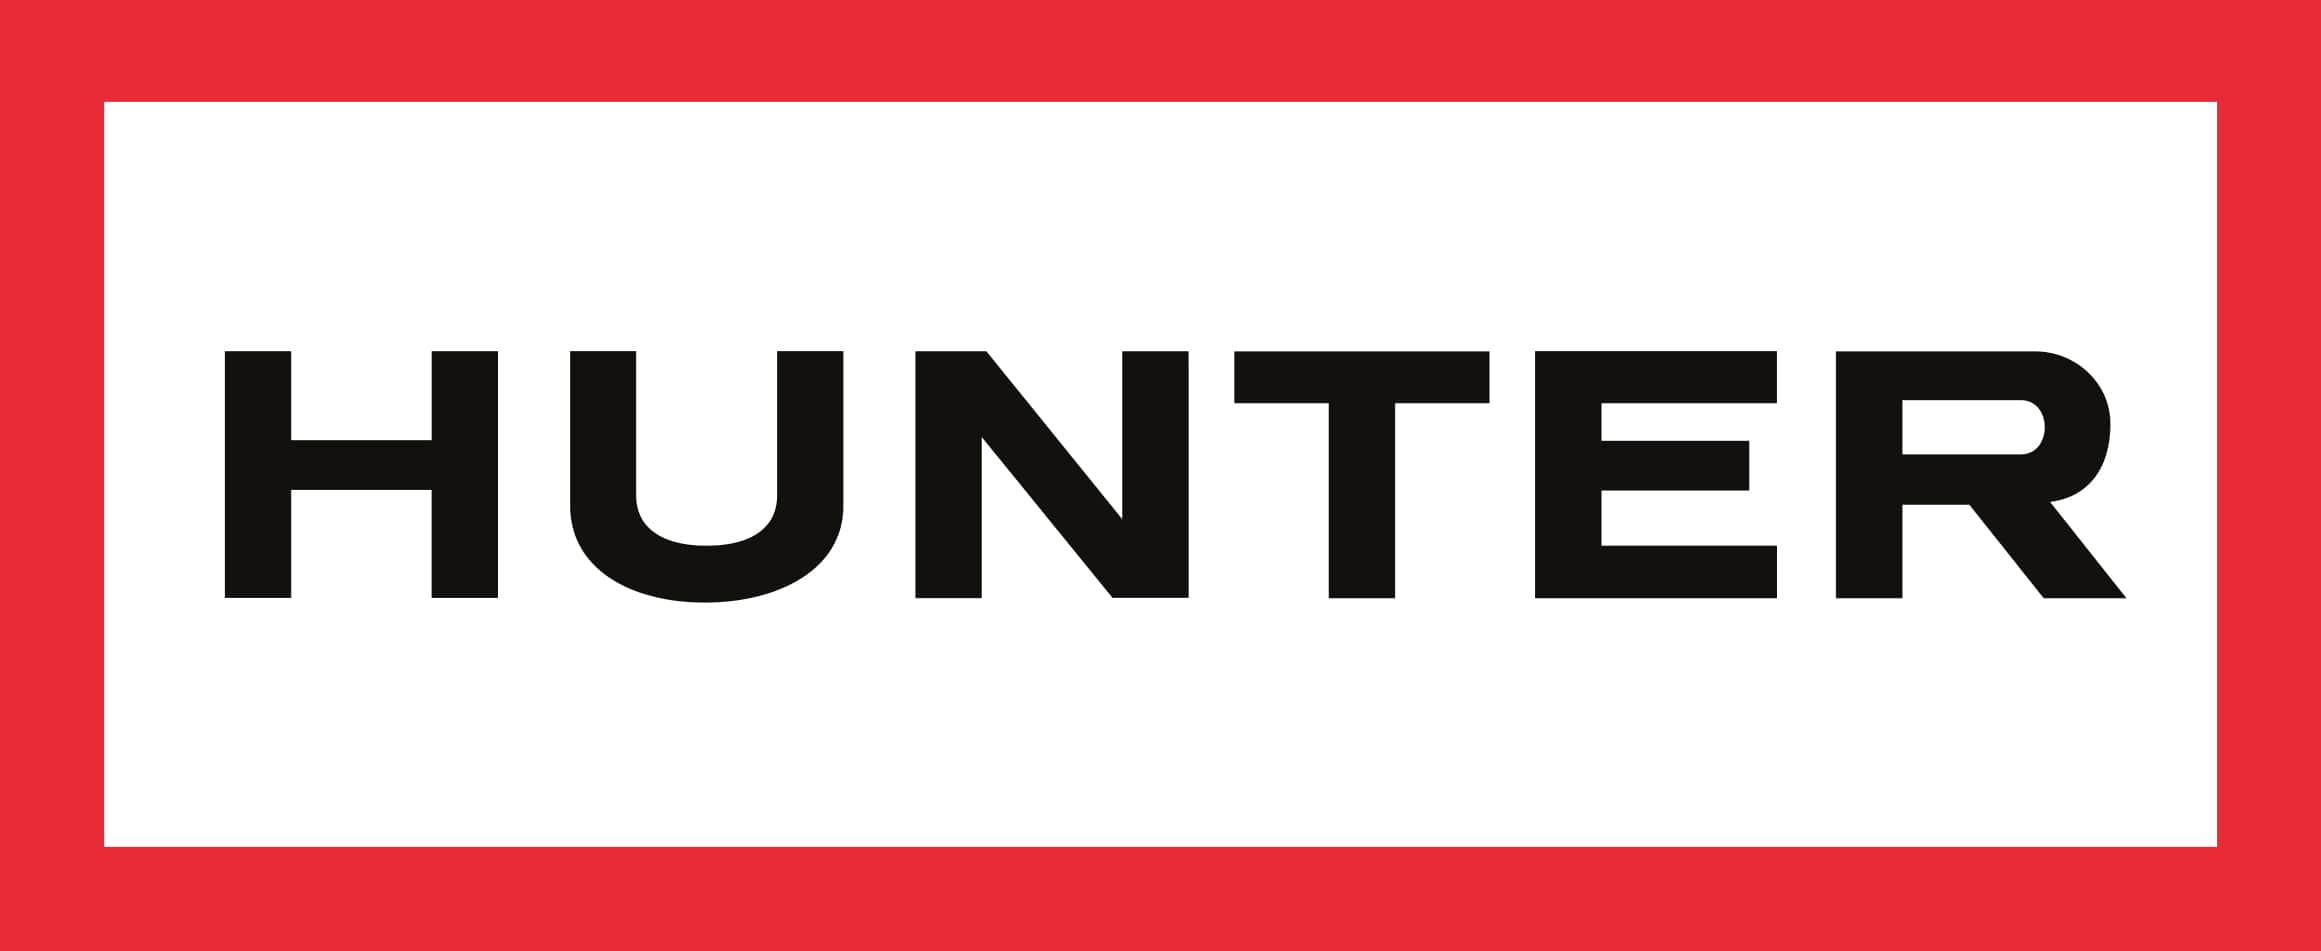 hunter logo-min